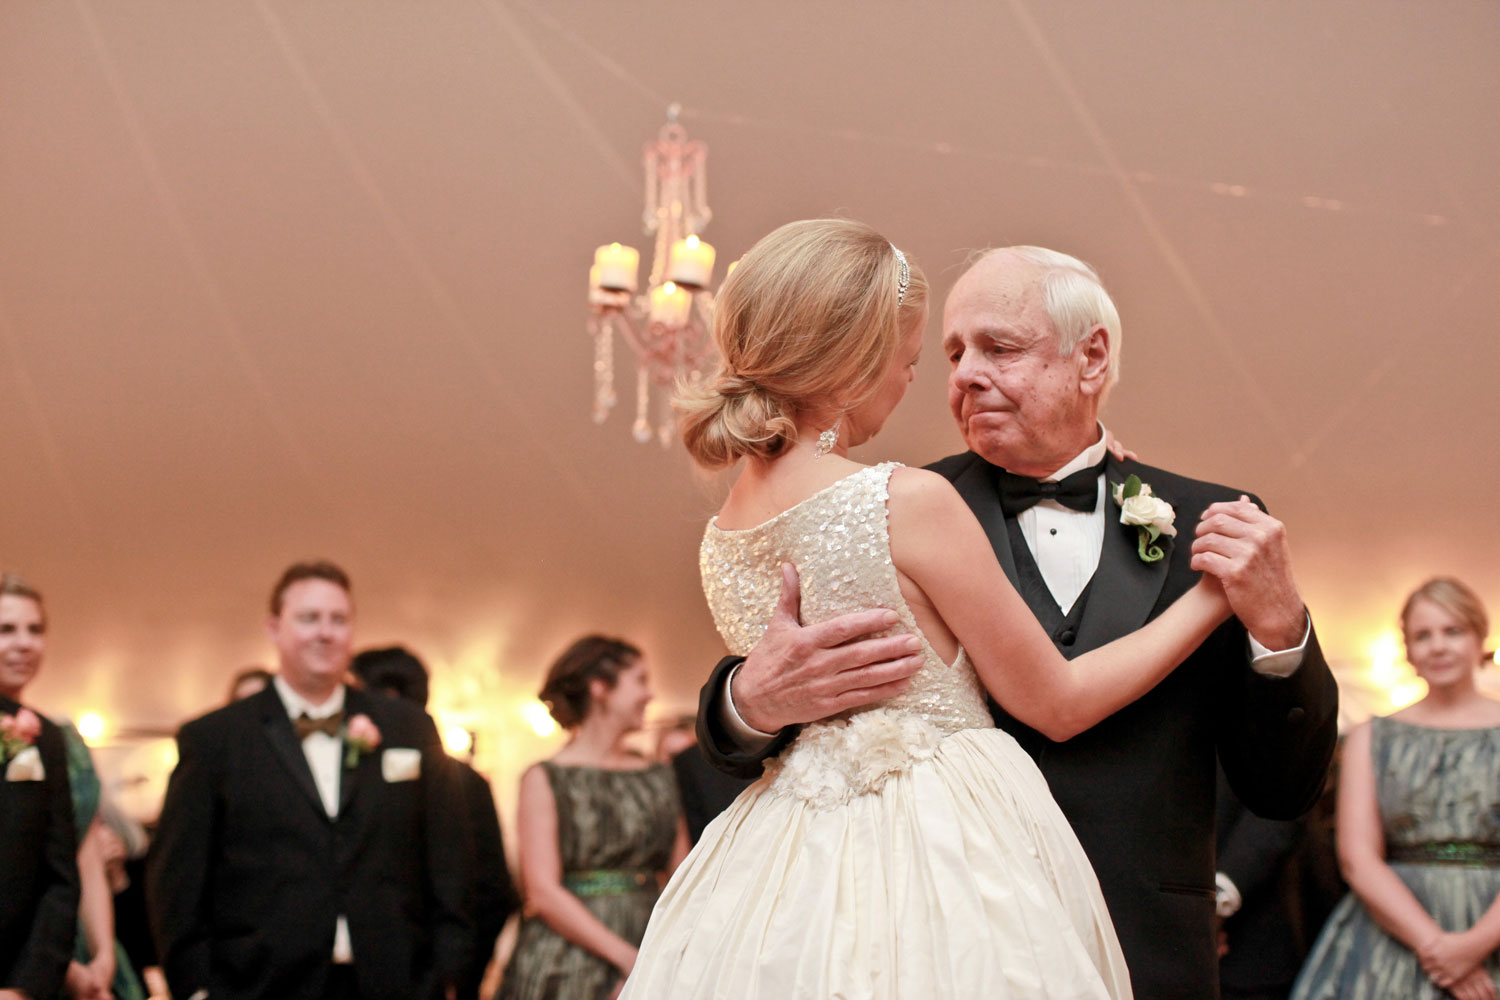 Touching photo of bride dancing with father at wedding reception